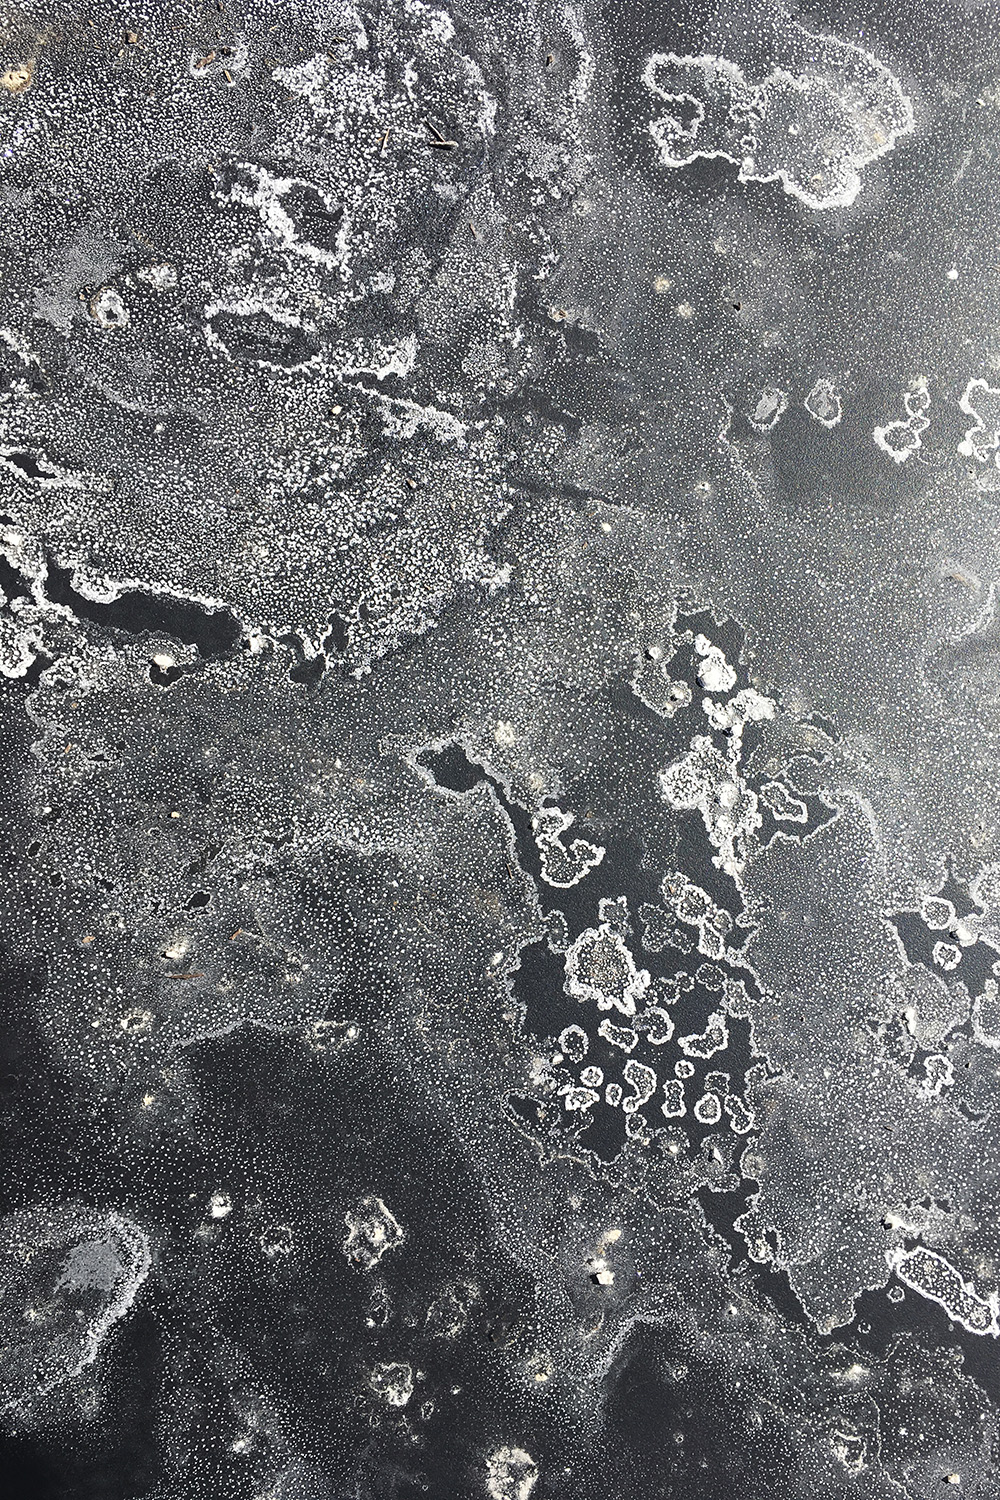 """Distant Galaxies   Jo Levine  Photograph printed on metal  12"""" x 18""""  $225   Click to inquire"""